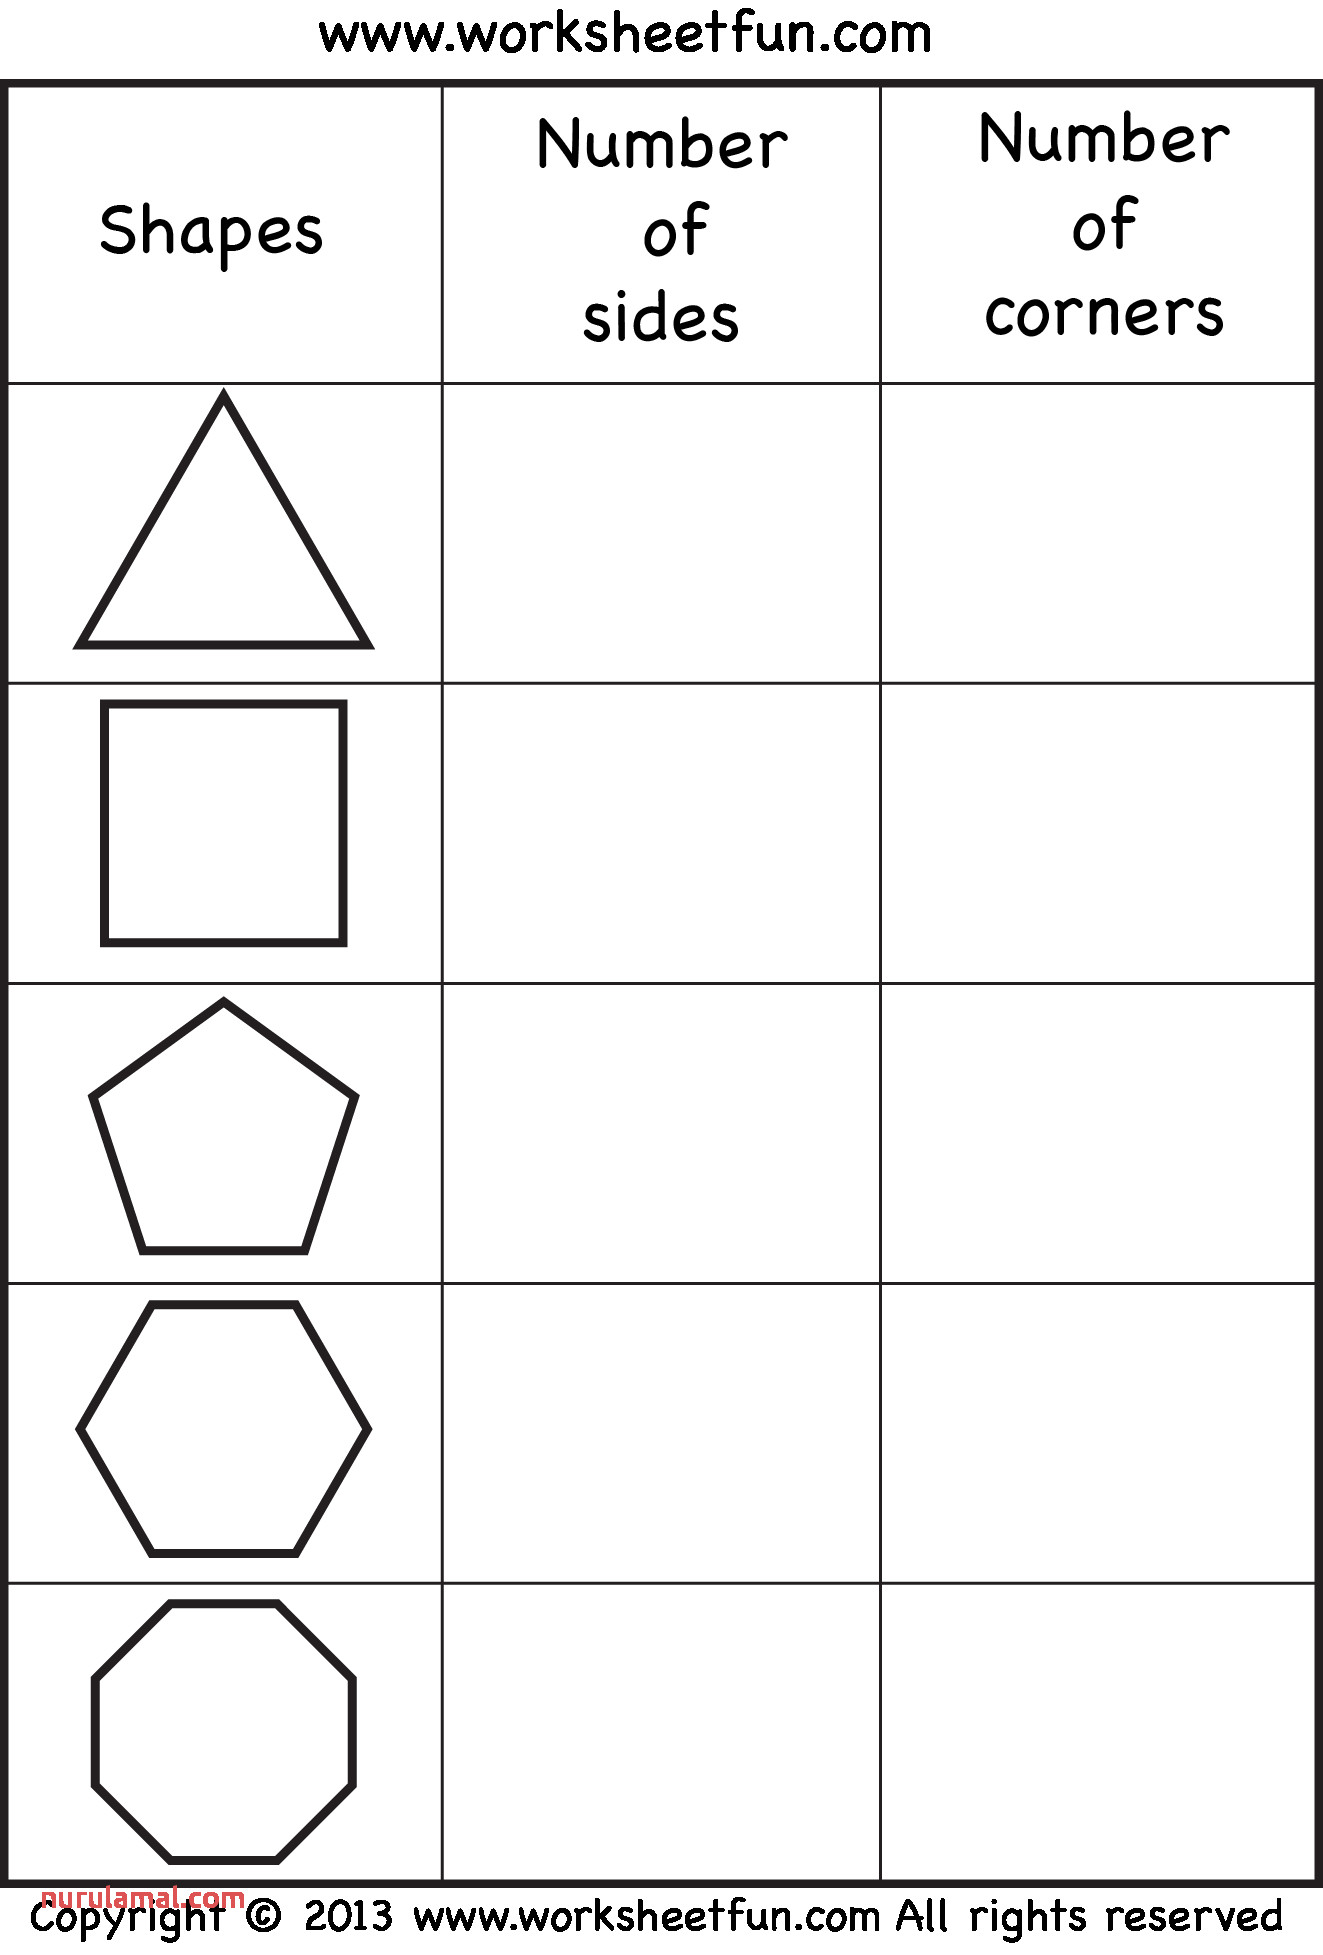 Sides and Corners – Number Of Sides – Number Of Corners